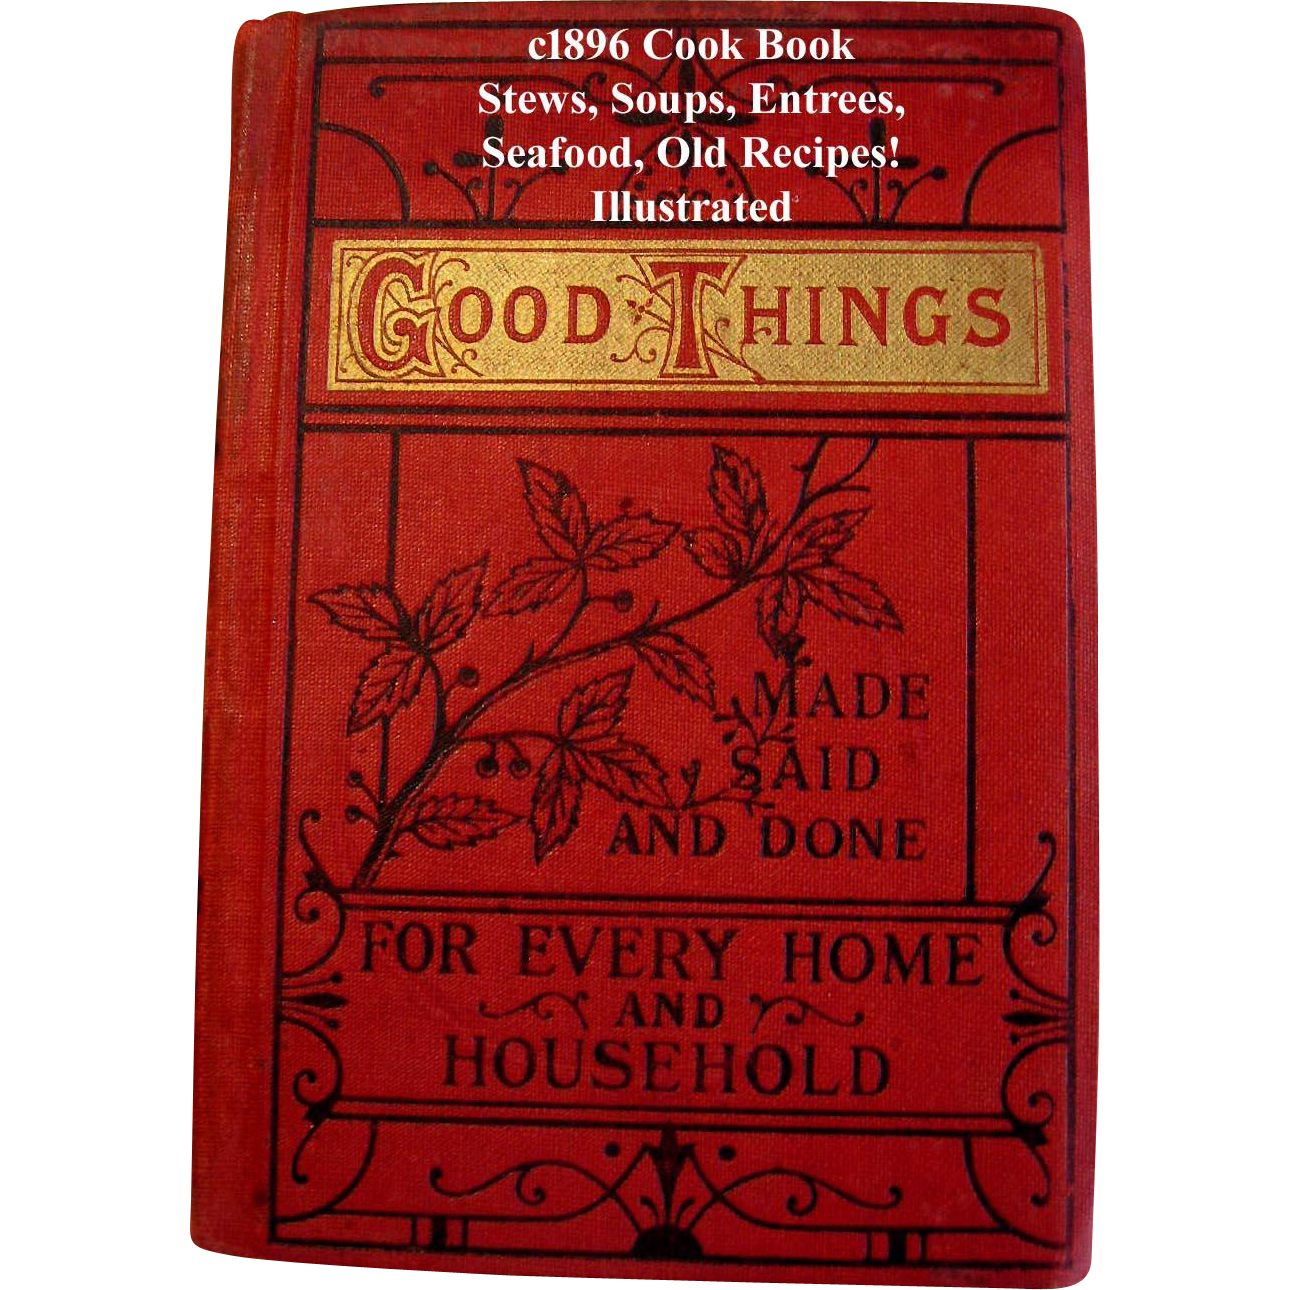 C1896 Cook Book Good Things Made Said Done for Every Home Household Baking Meat Fish Soup Cake Bread Pudding Quack Medicine Wonderful Illustrations